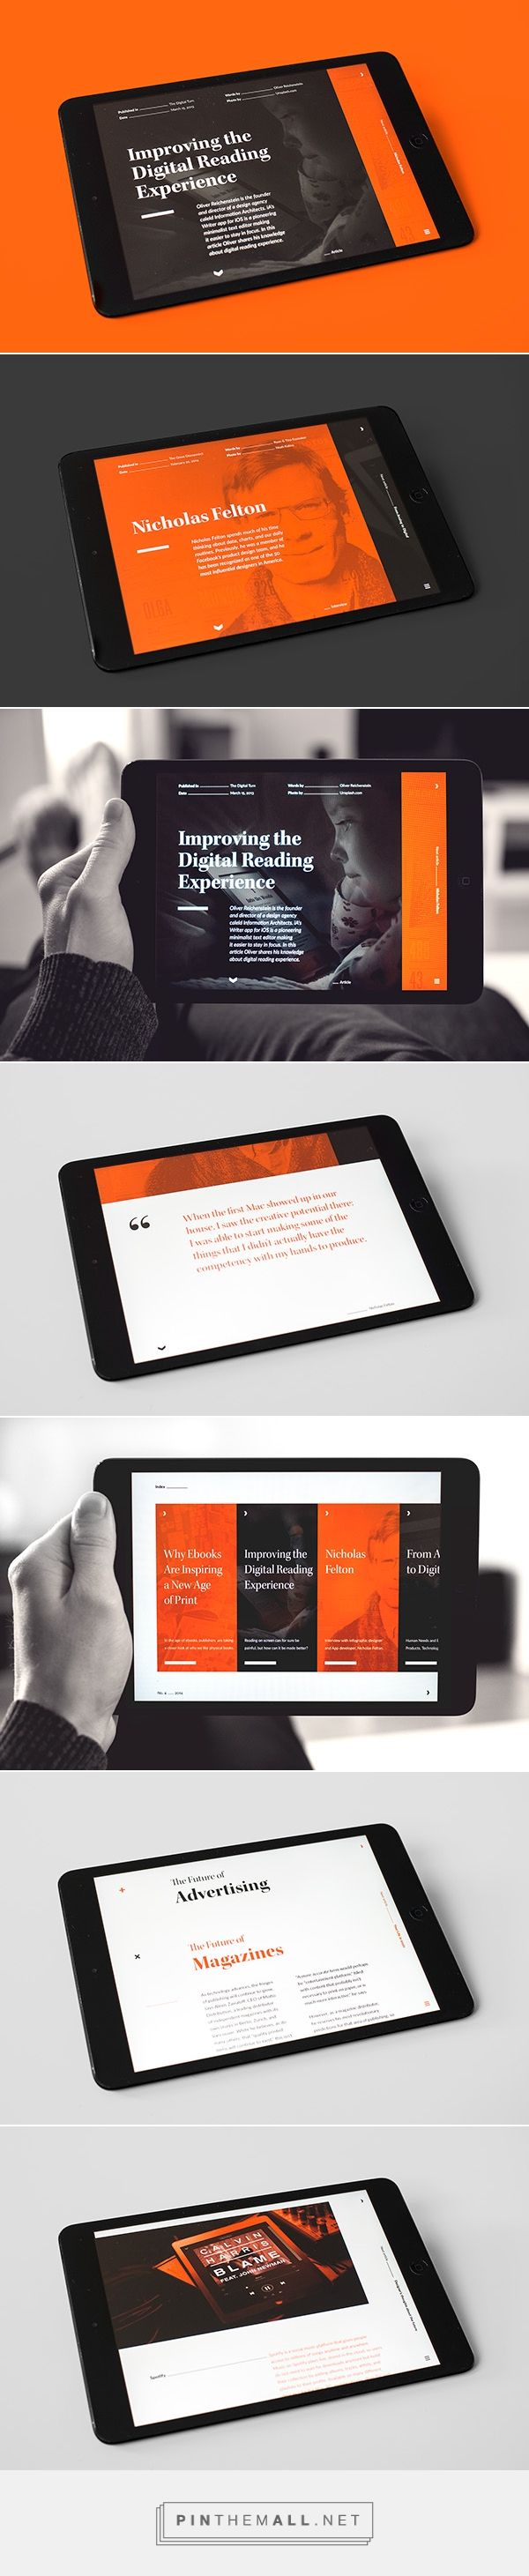 Verso – Digital Magazine | Abduzeedo Design Inspiration - created via http://pinthemall.net